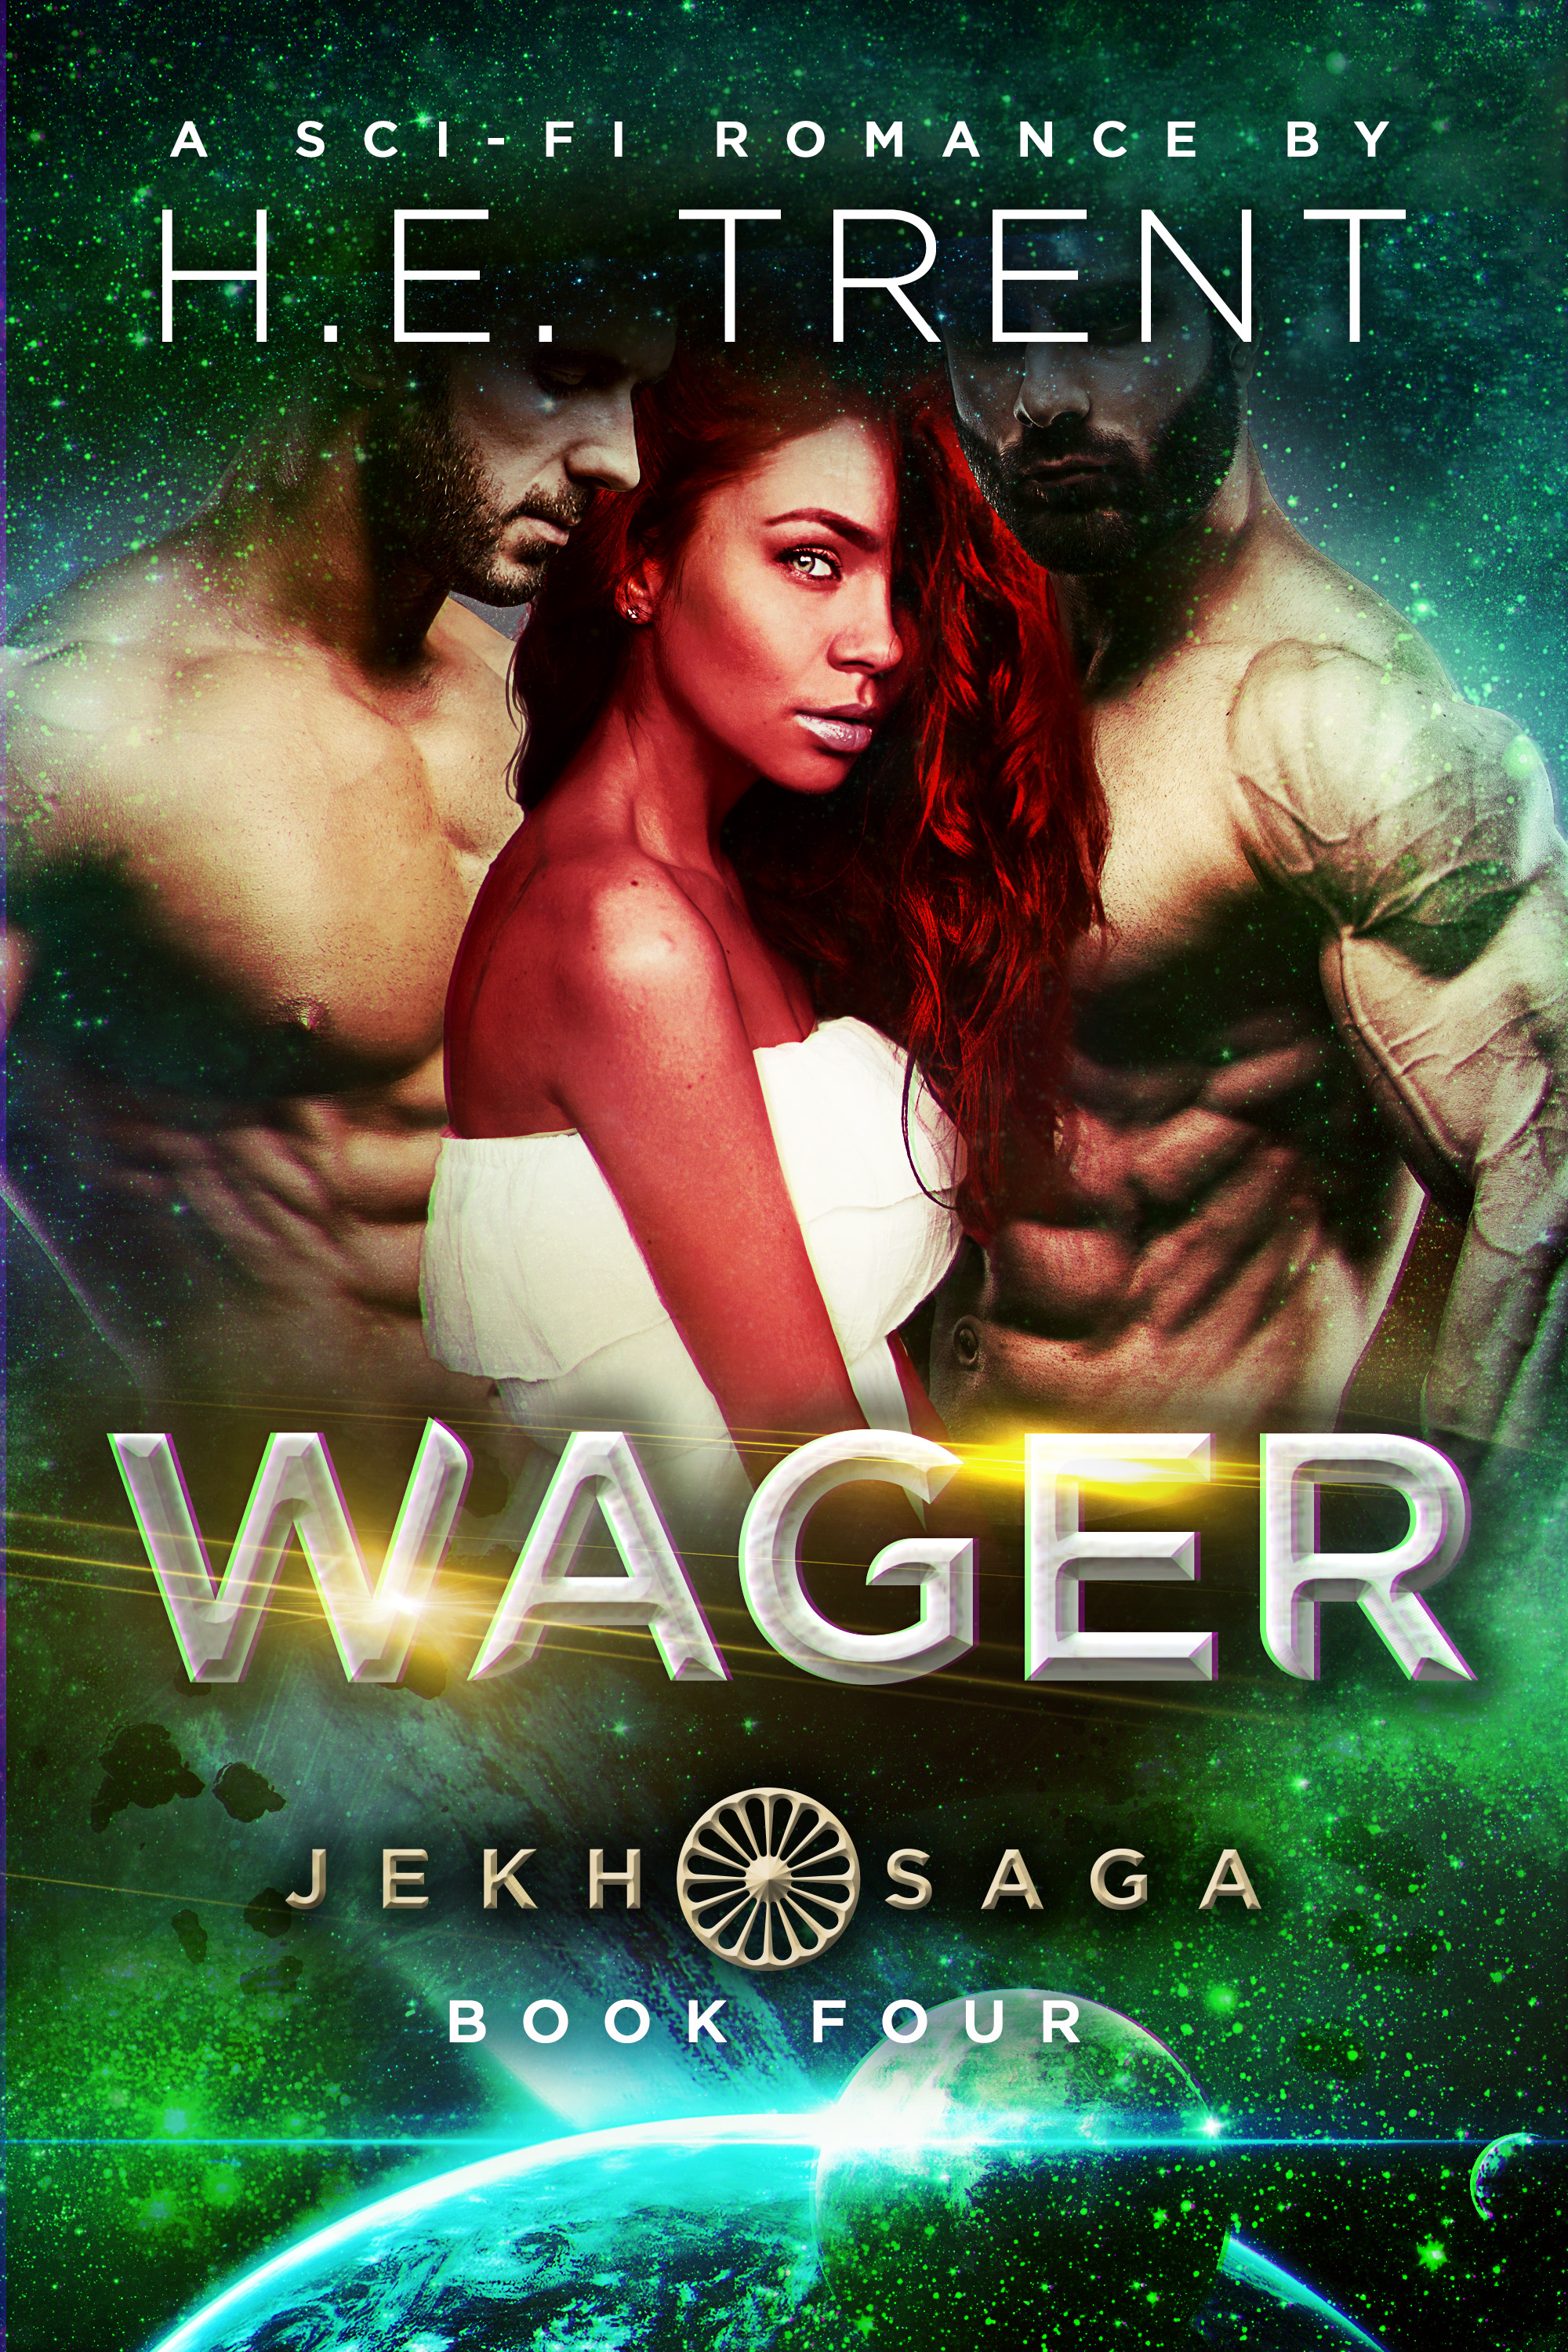 WAGER—Jekh Saga 4—is out now